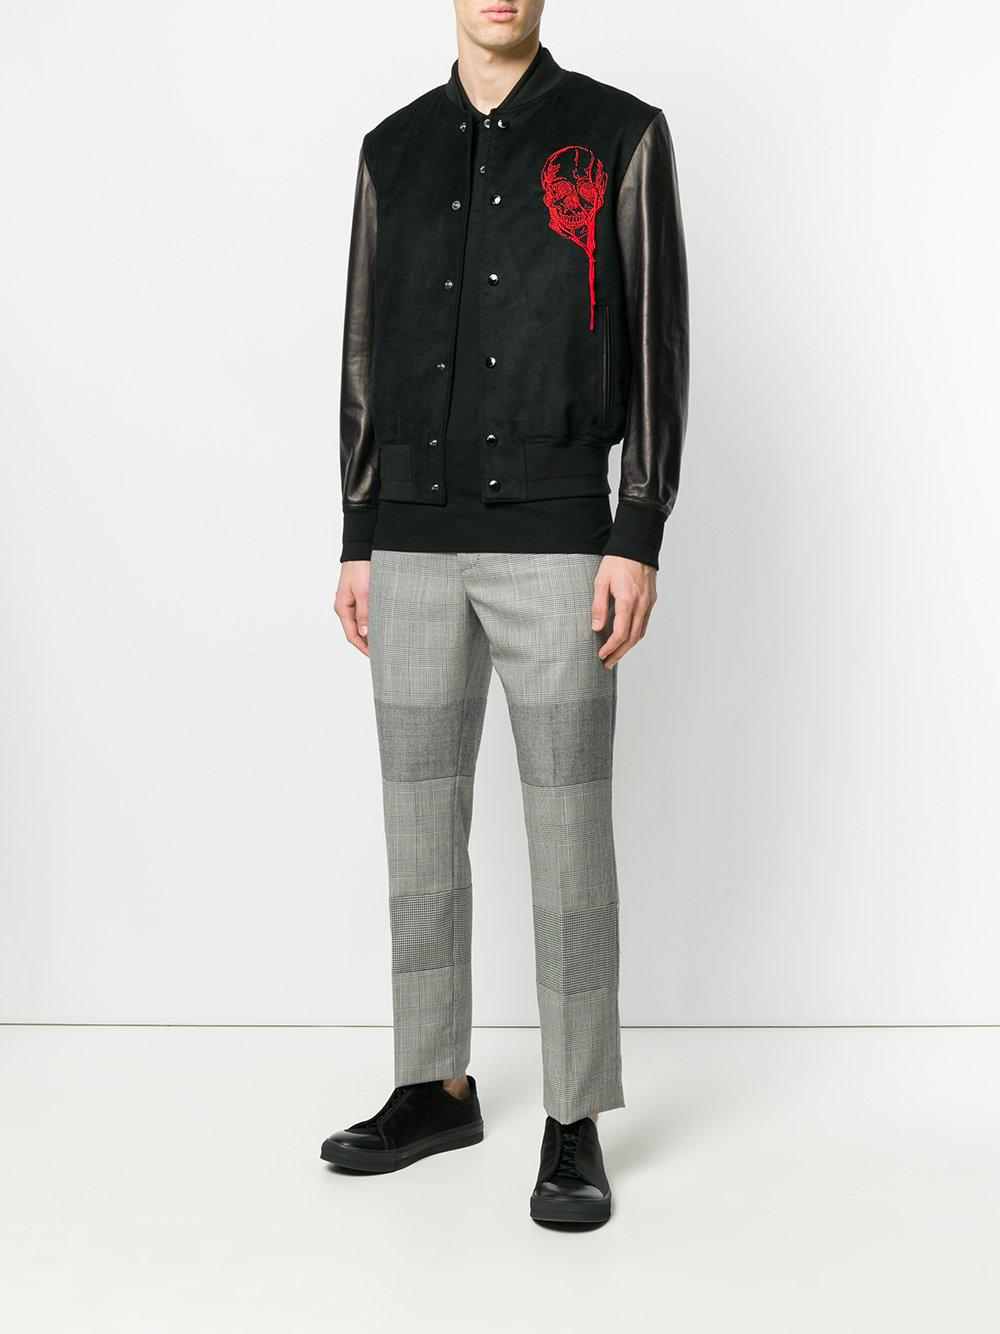 546e0f2f4fe Alexander McQueen Embroidered Varsity Jacket in Blue for Men - Lyst